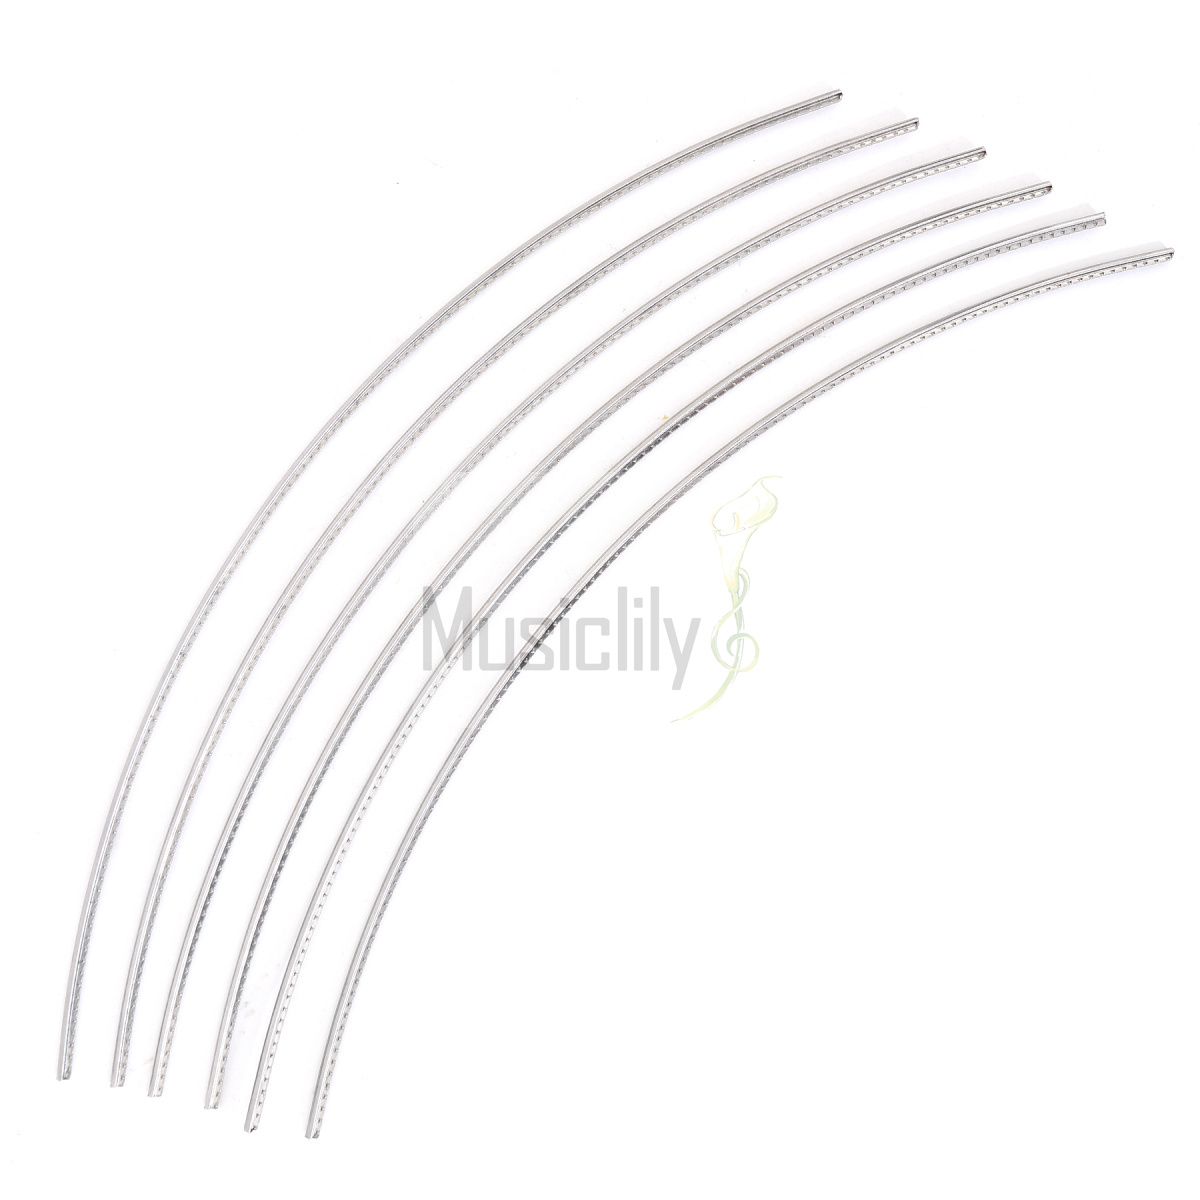 Sintoms 2 5mm Medium Stainless Steel Fret Wire Set For